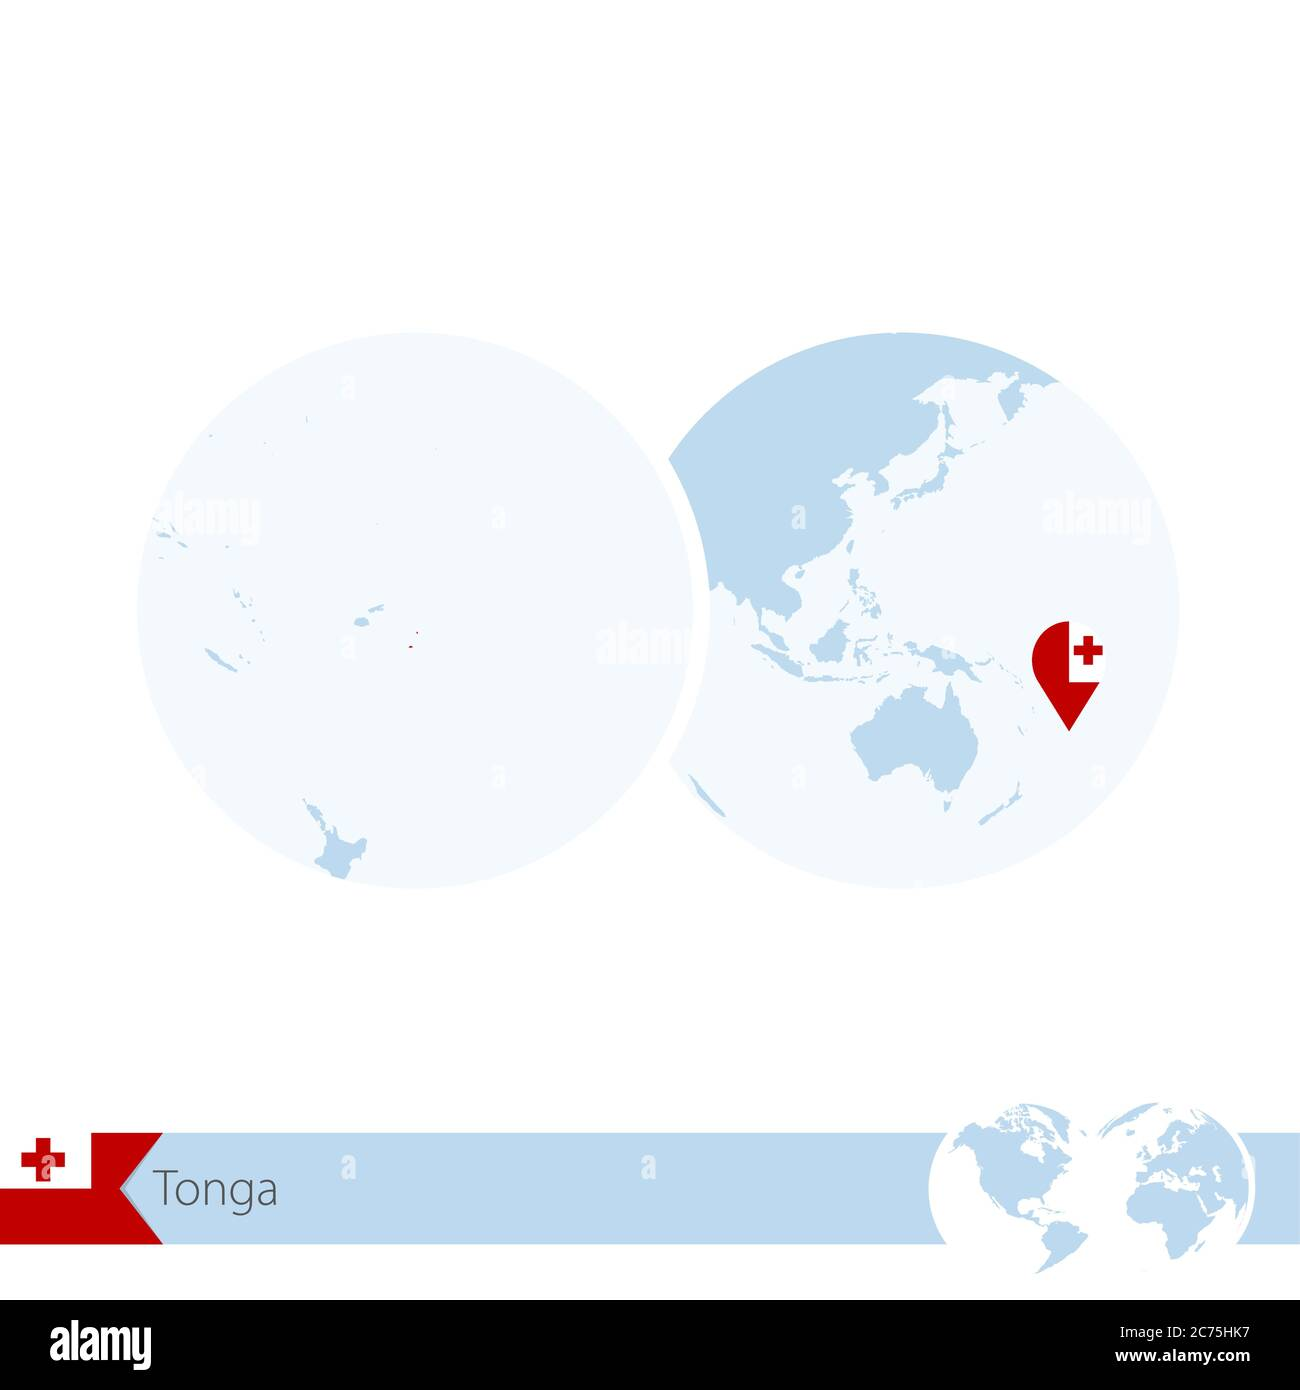 Image of: Tonga On World Globe With Flag And Regional Map Of Tonga Vector Illustration Stock Vector Image Art Alamy